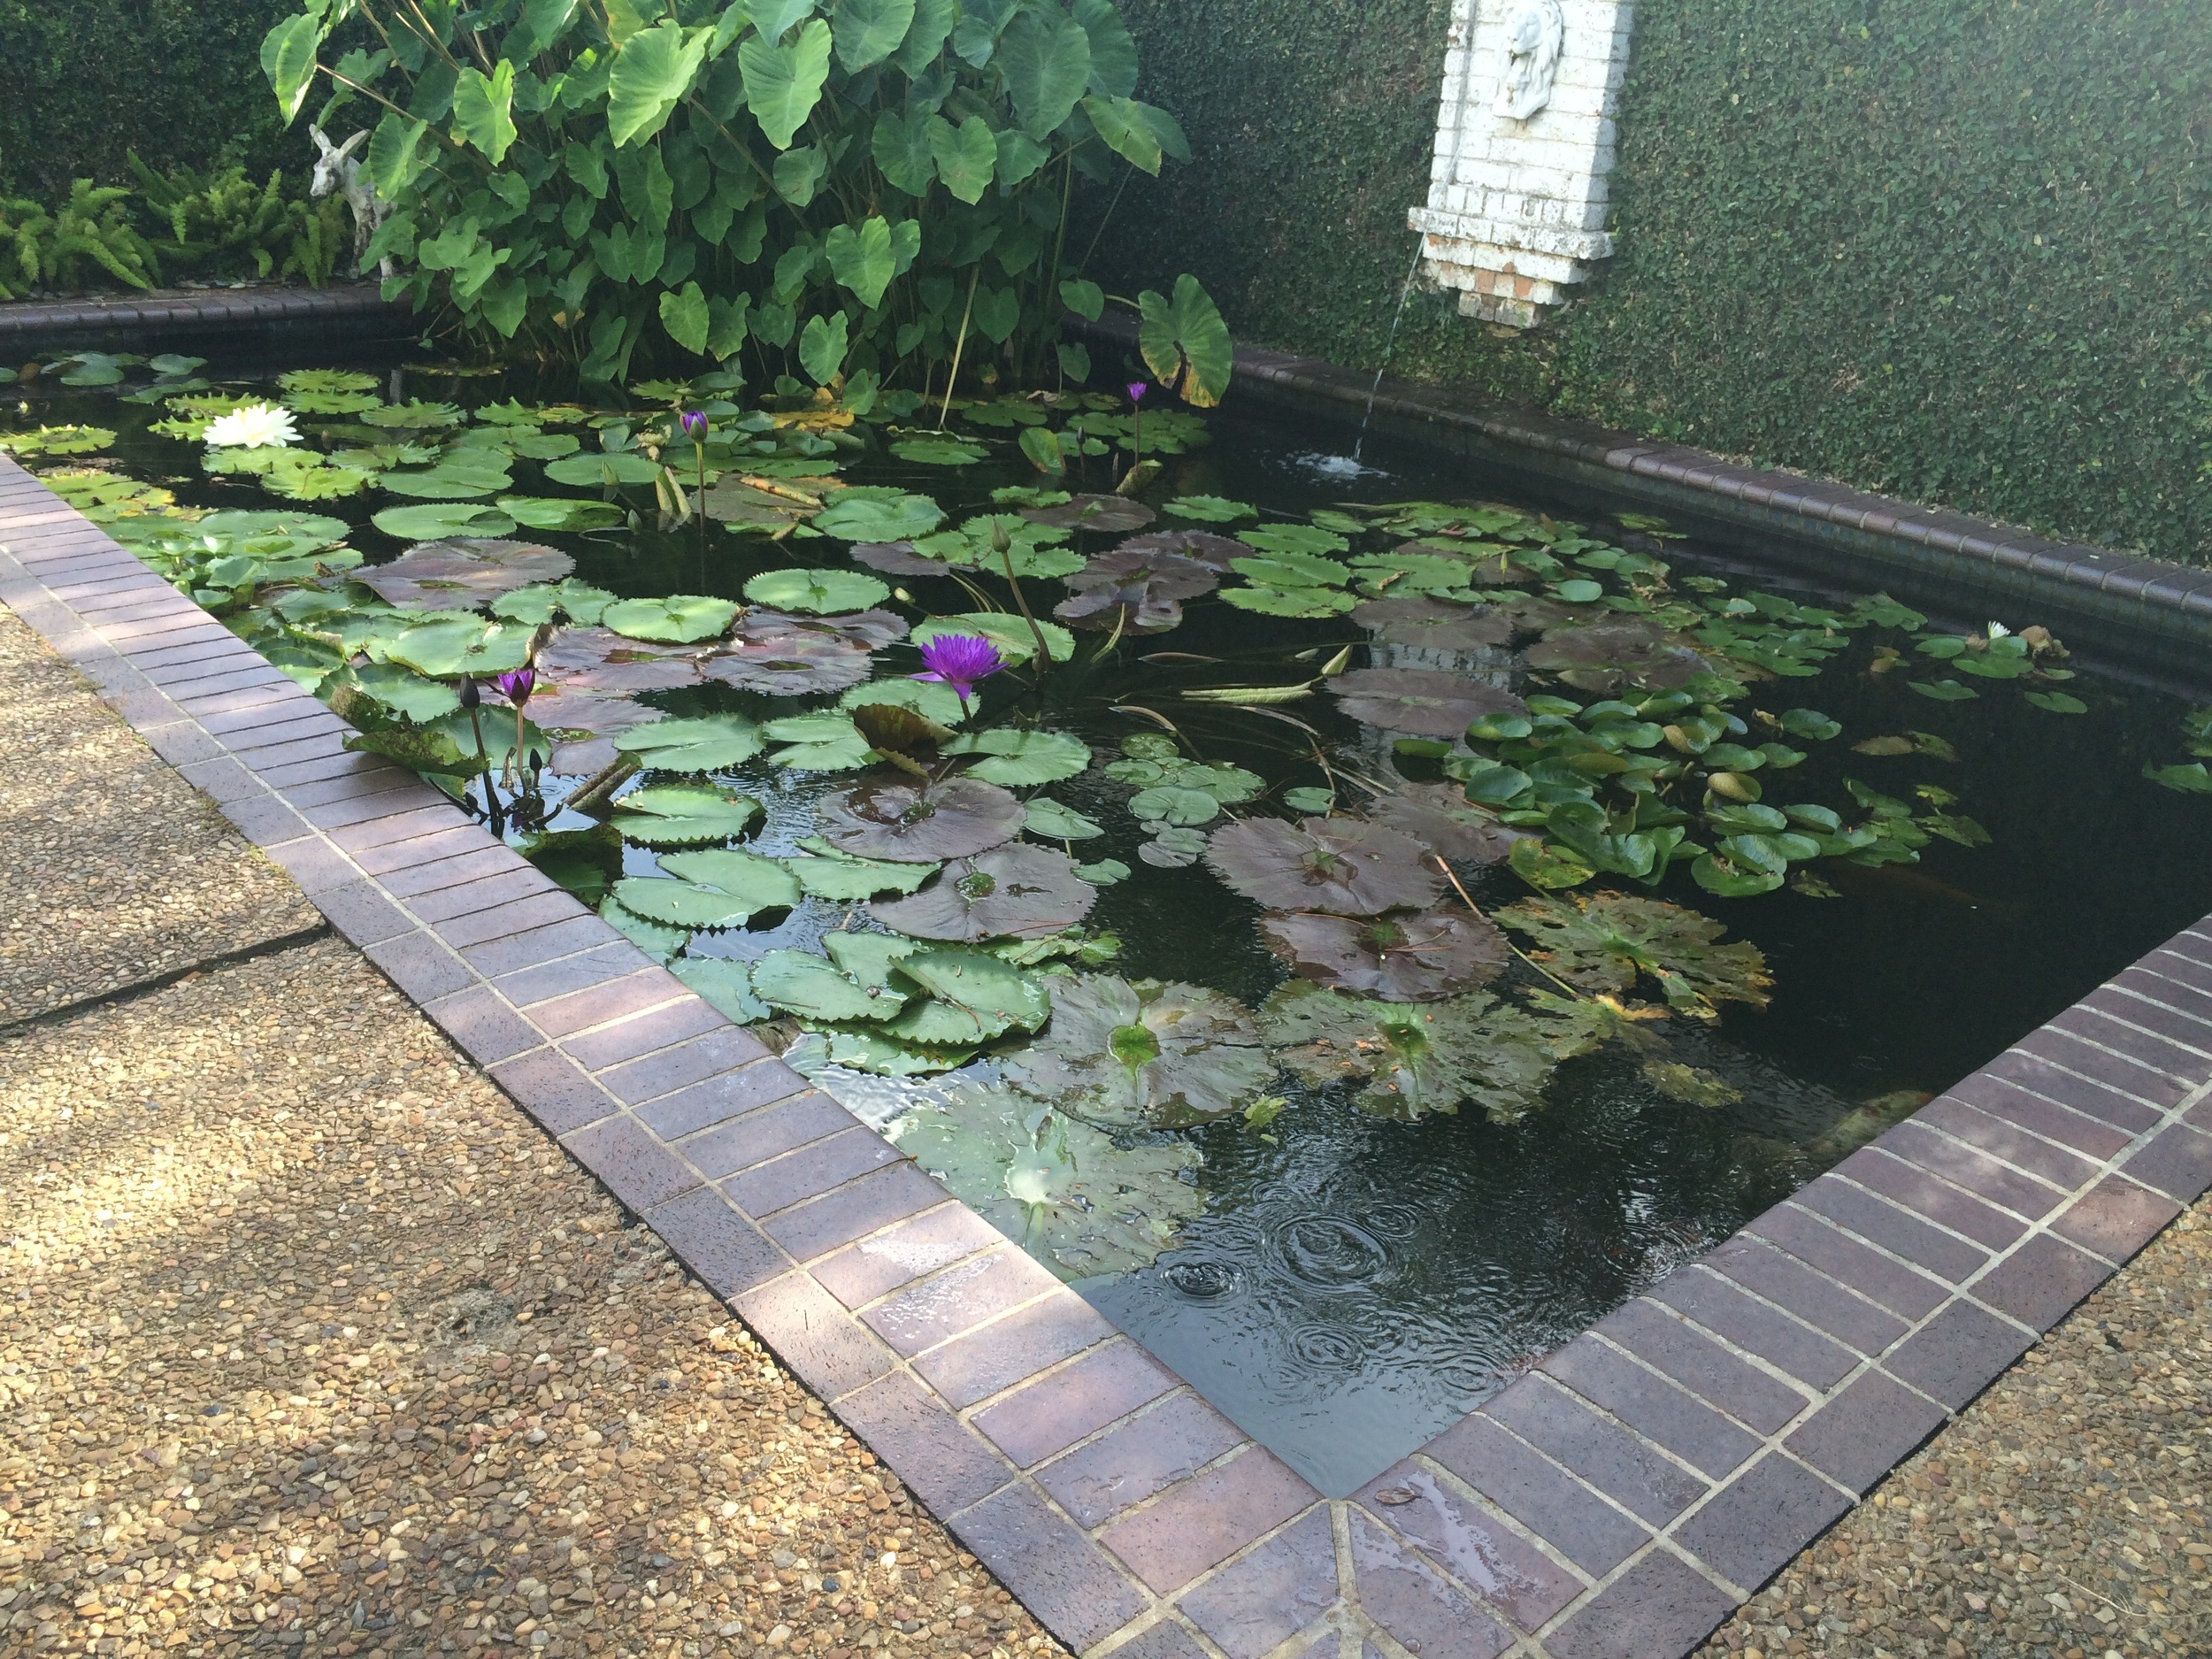 The before picture - the lilies are taking over.